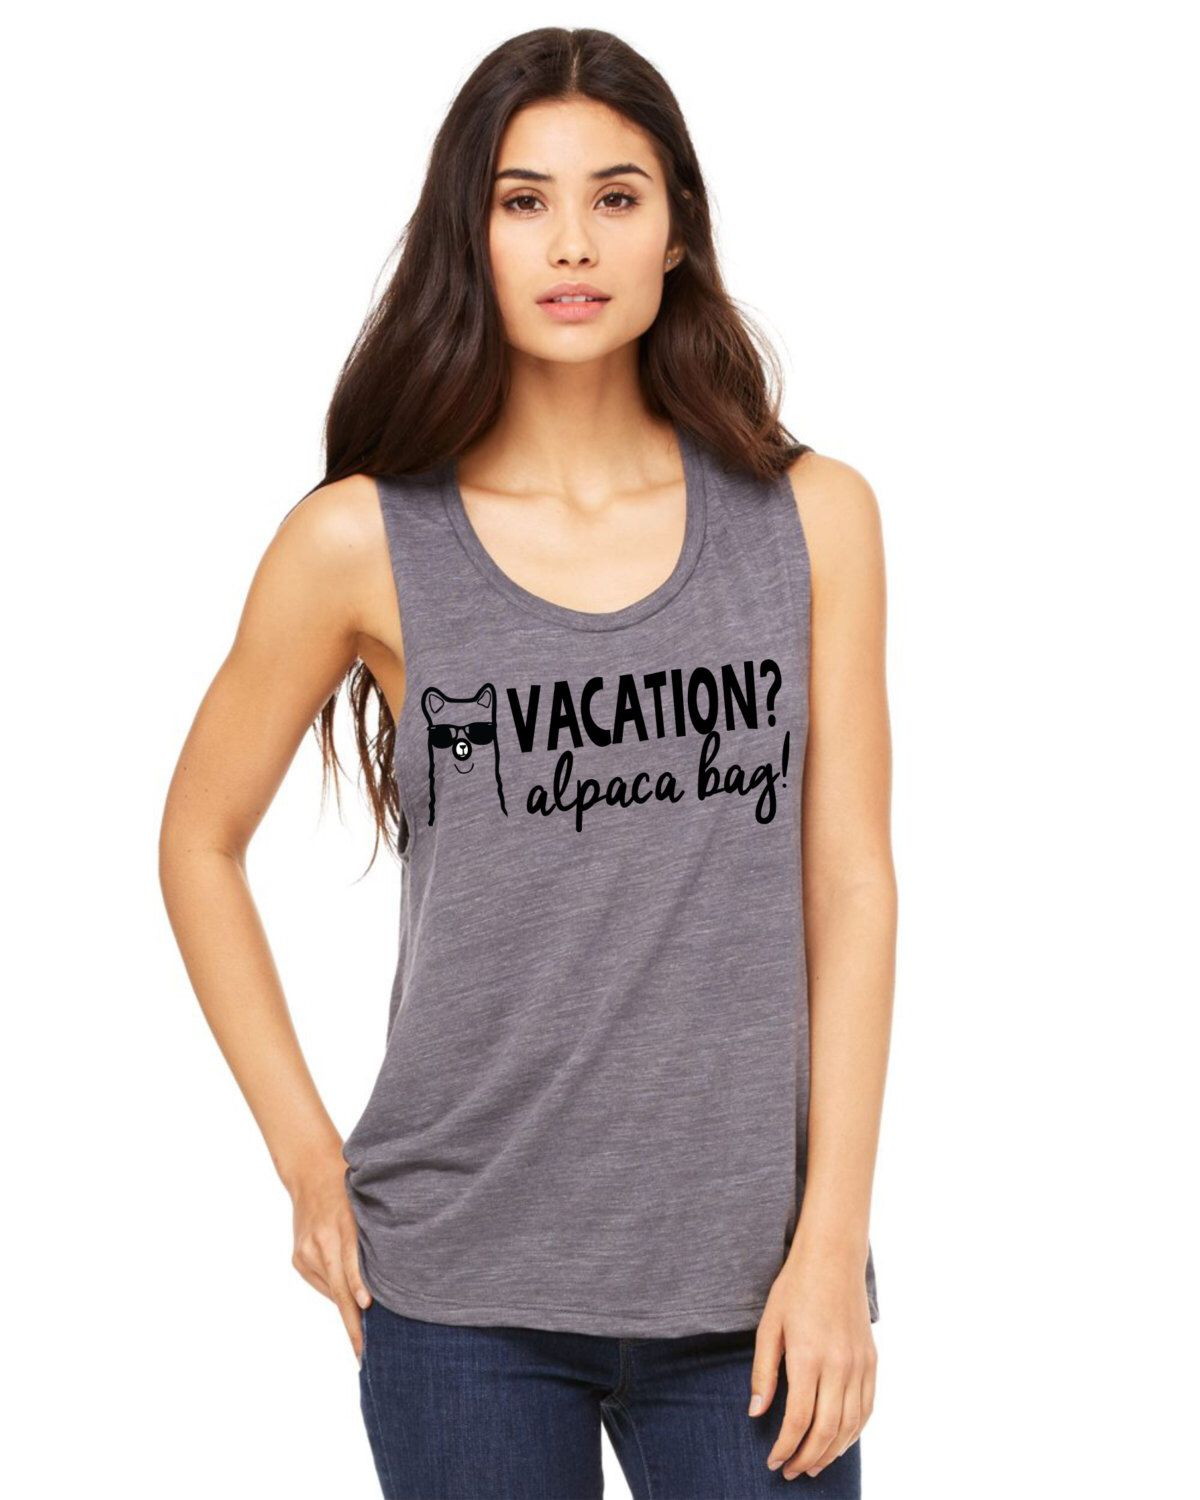 Vacation? Alpaca Bag Muscle Tank by yogatops on Etsy https://www.etsy.com/listing/235378709/vacation-alpaca-bag-muscle-tank